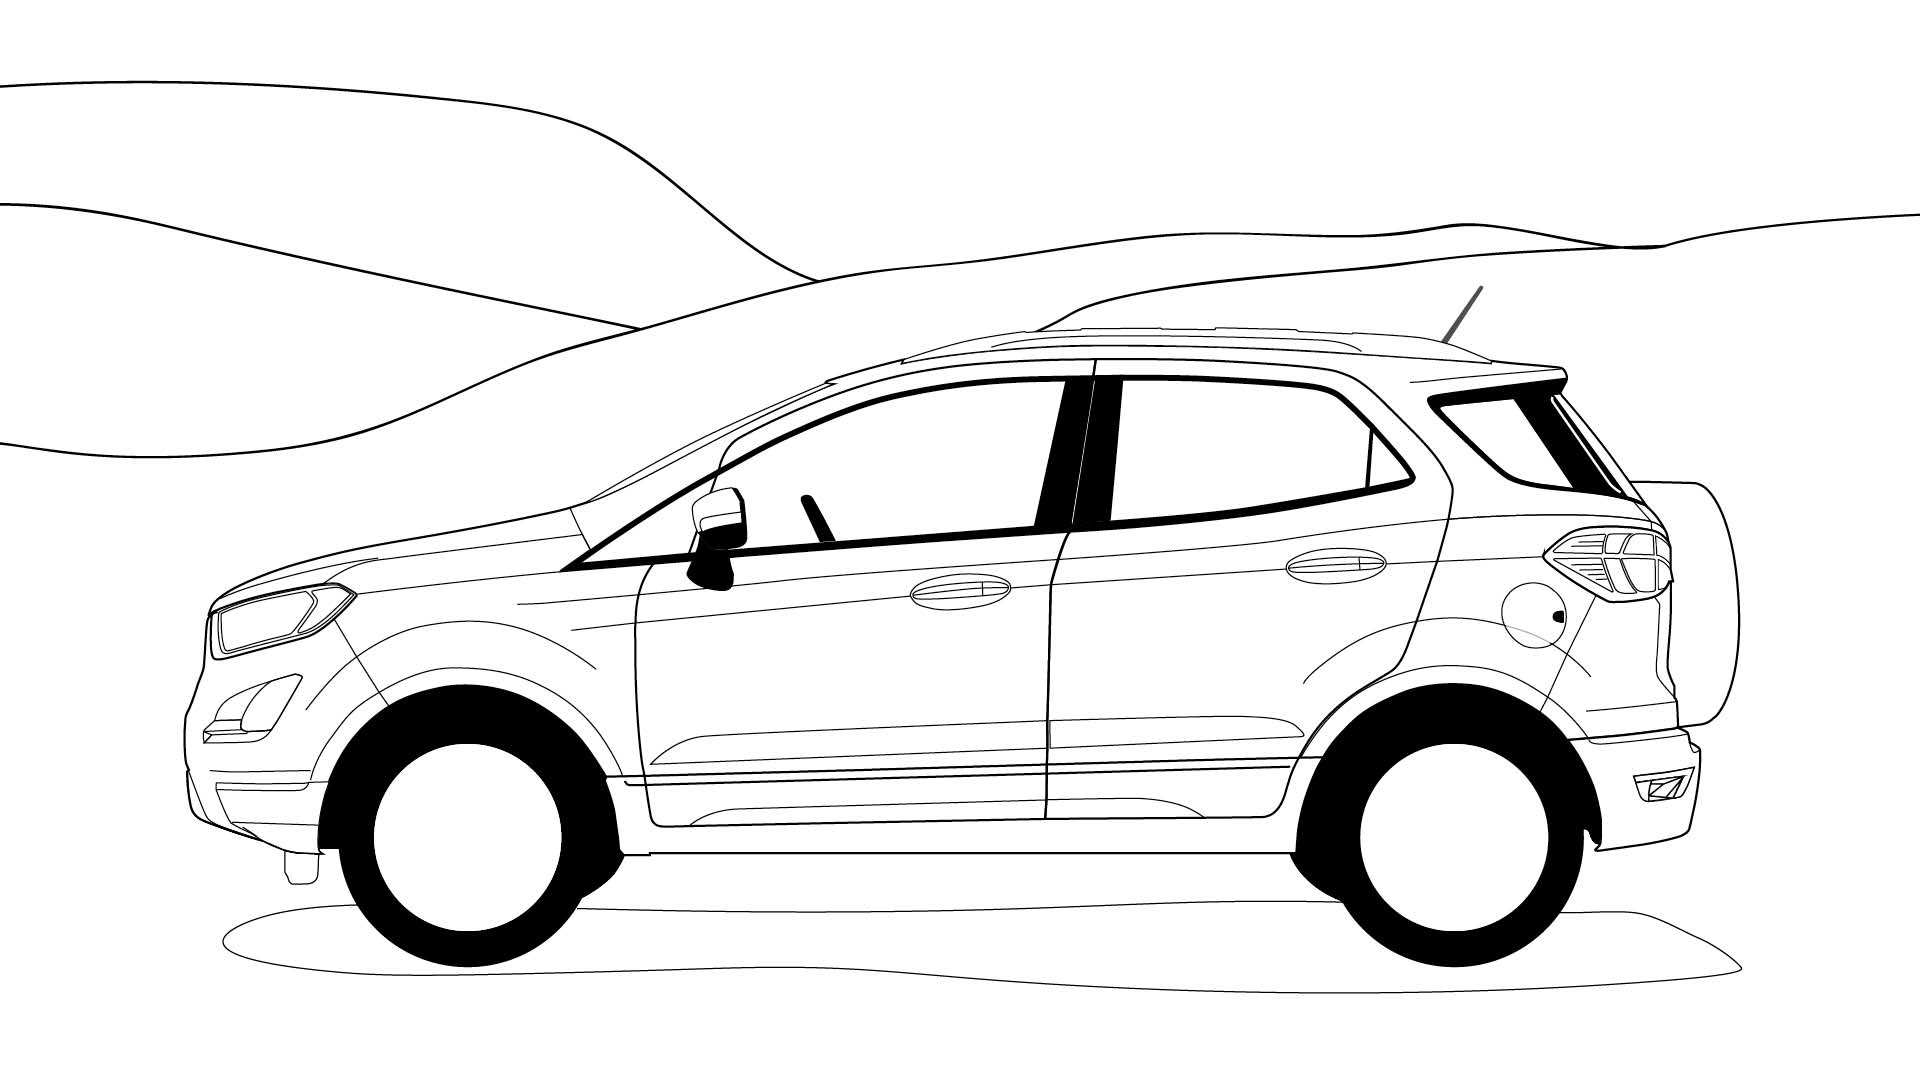 Ford Stay Home EcoSport colouring in poster